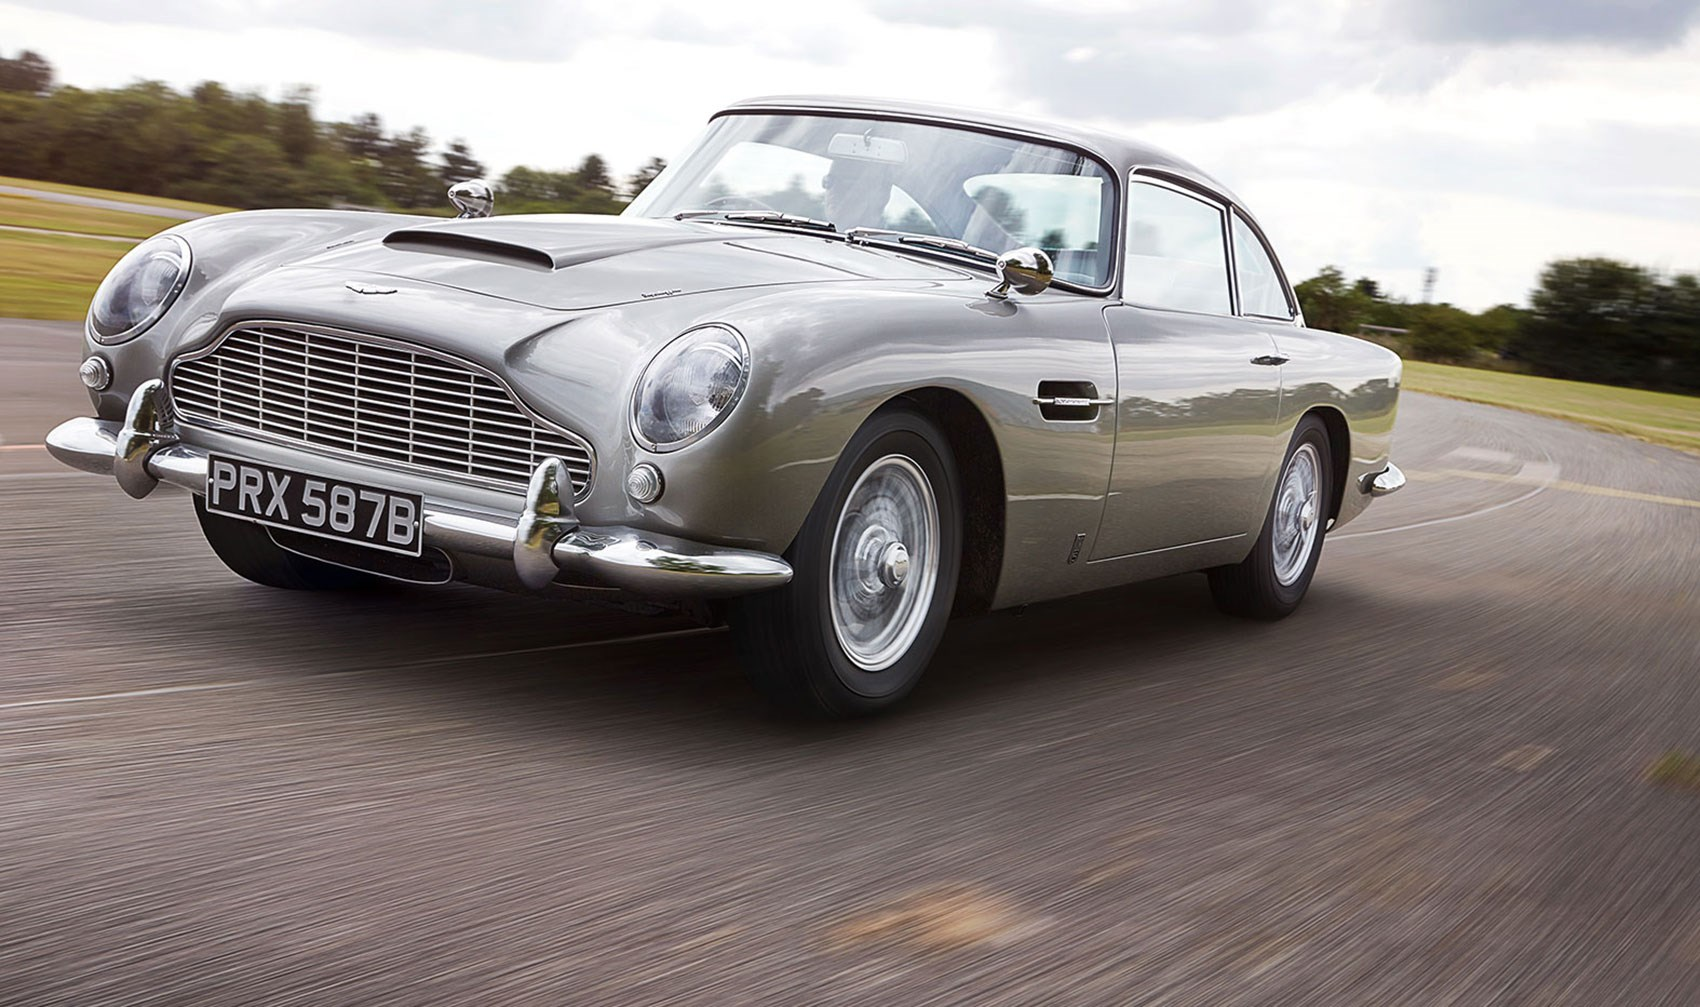 25 british cars to drive before you die: 6) aston martin db5, car+